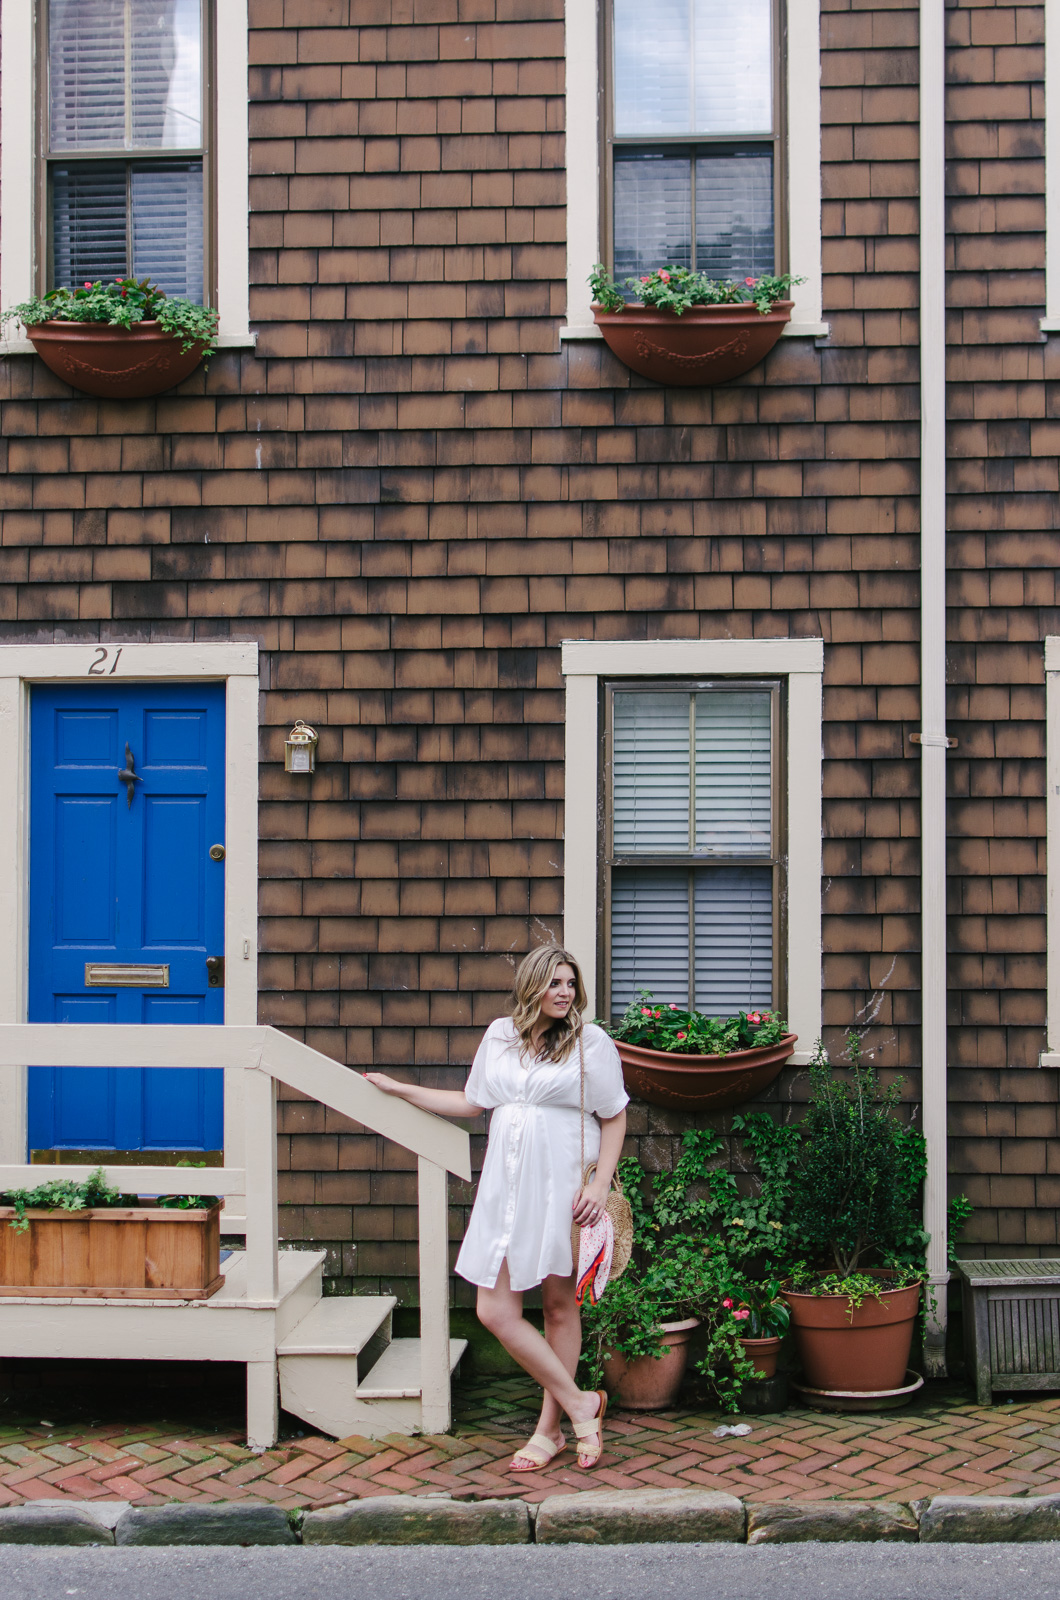 Annapolis MD weekend guide | Don't miss the full Annapolis Weekend Guide: where to eat, what to do, and where to stay! | bylaurenm.com